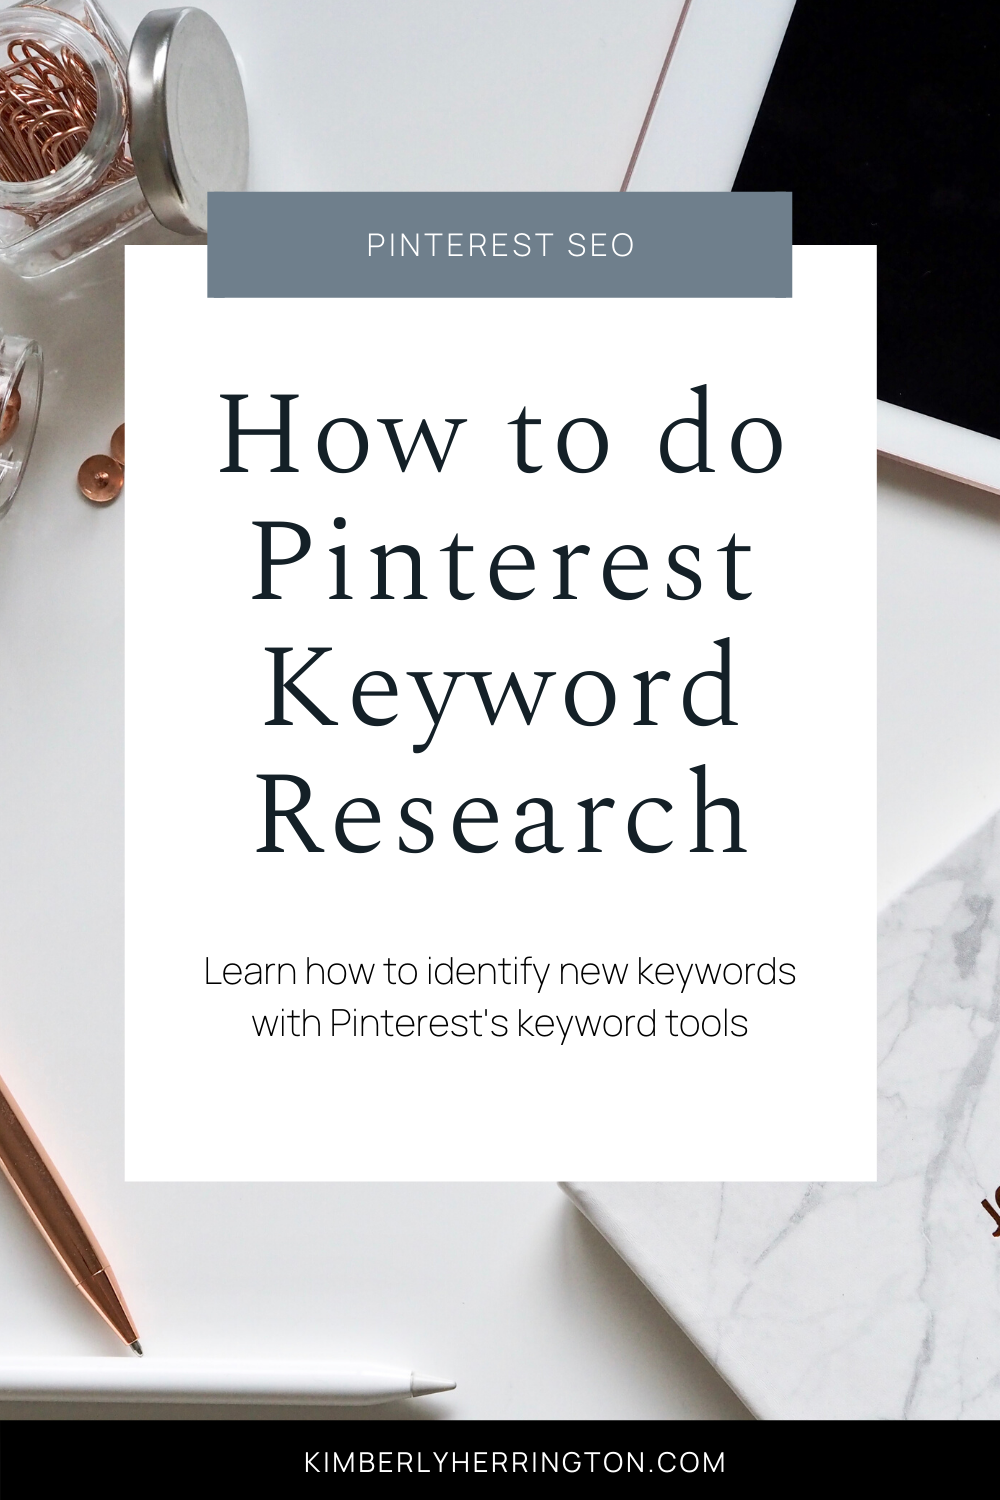 How to Do Keyword Research on Pinterest